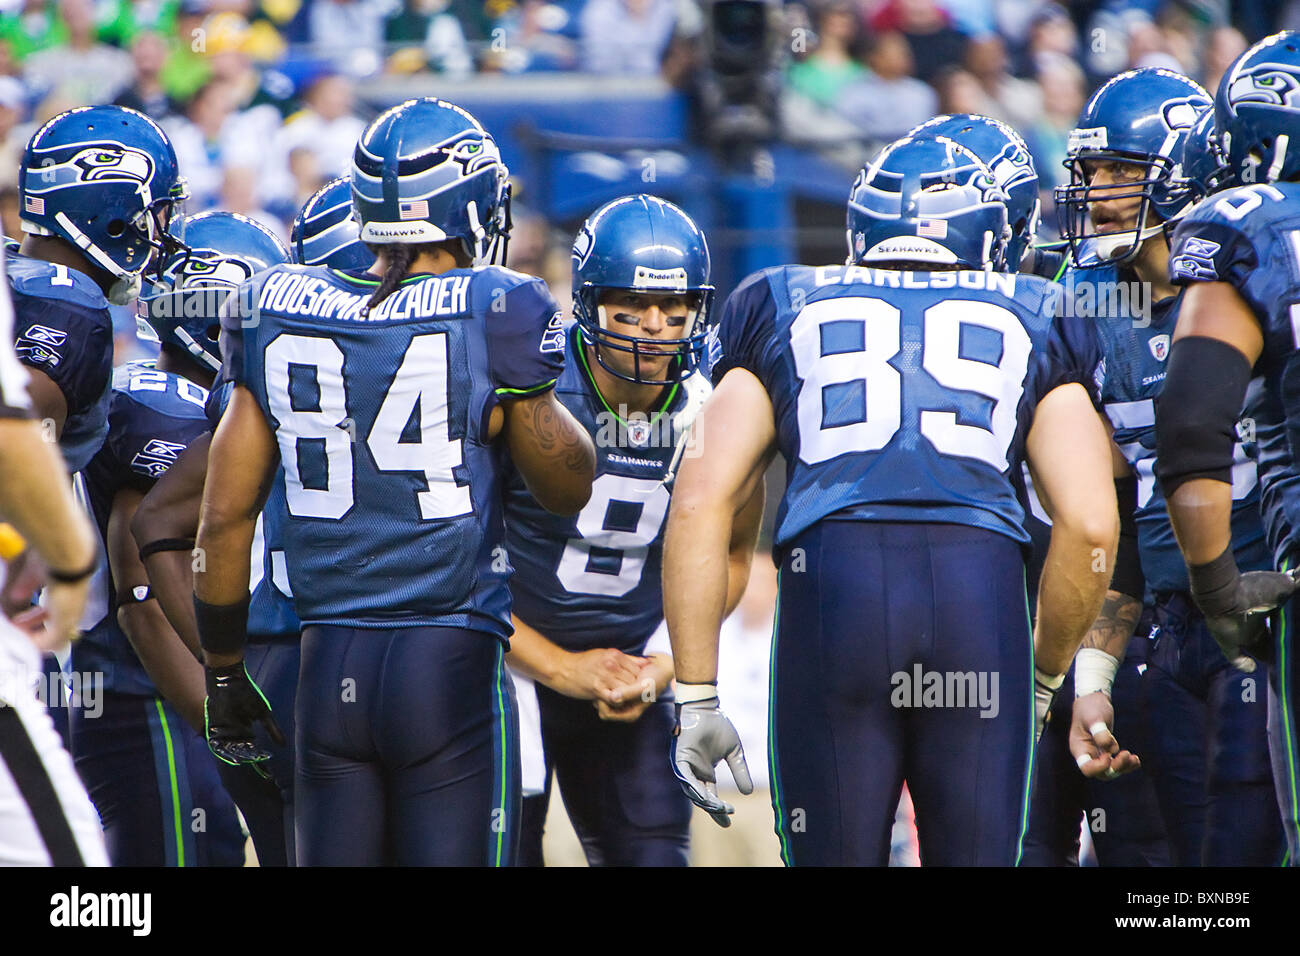 Seattle Seahawks Quarterback Matt Hasselbeck leading the huddle during an NFL football game - Stock Image